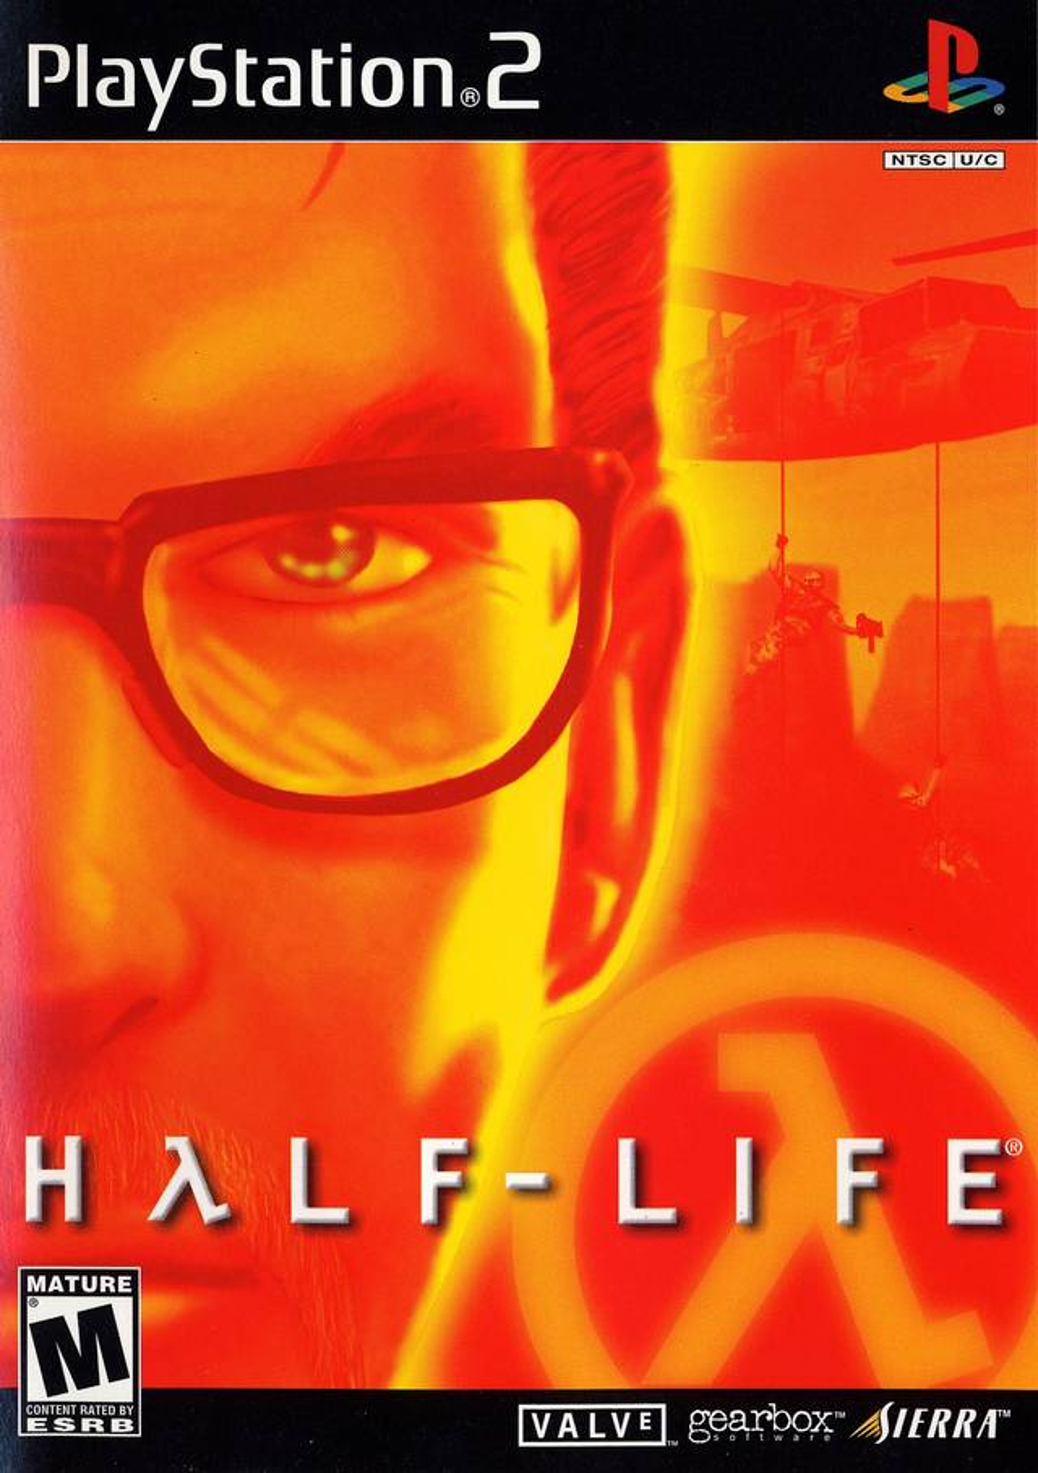 Half-Life - PlayStation 2 - North American Box Art